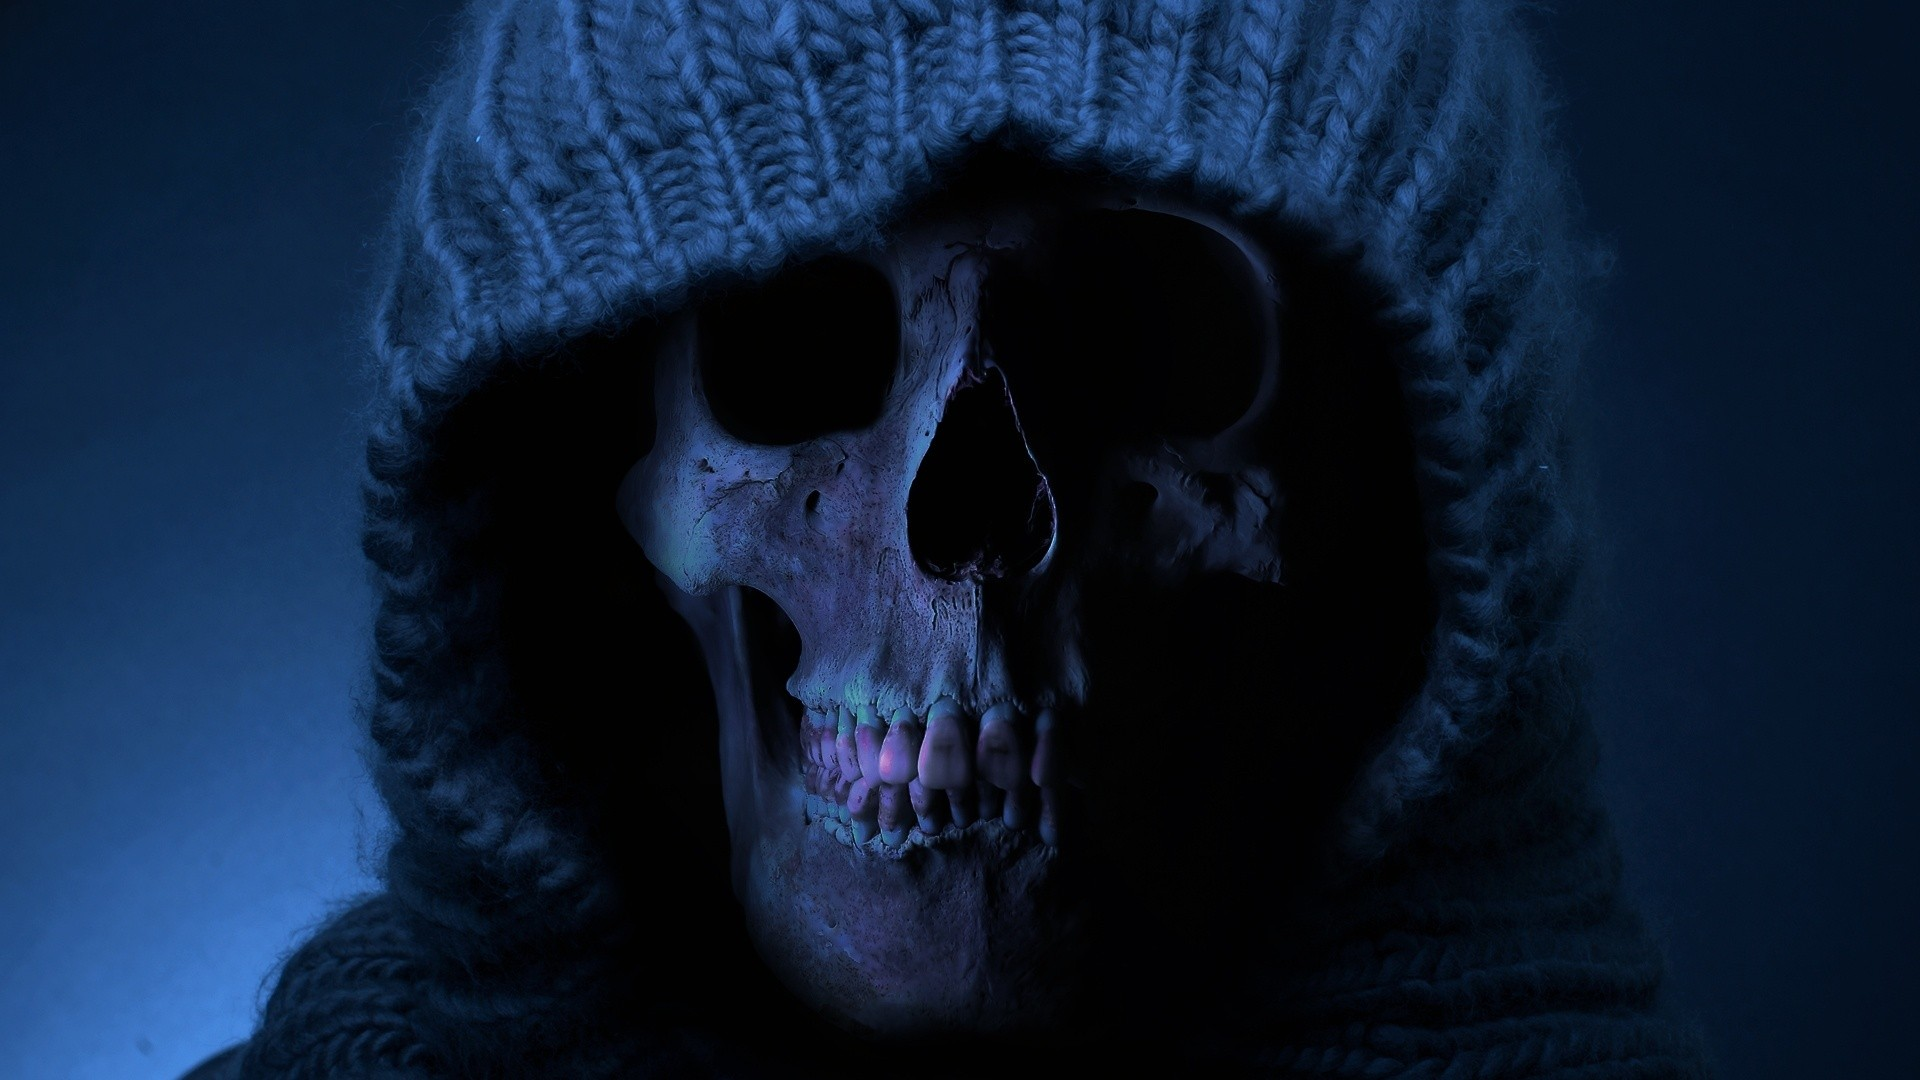 skull wallpaper wallpapers hd - photo #14